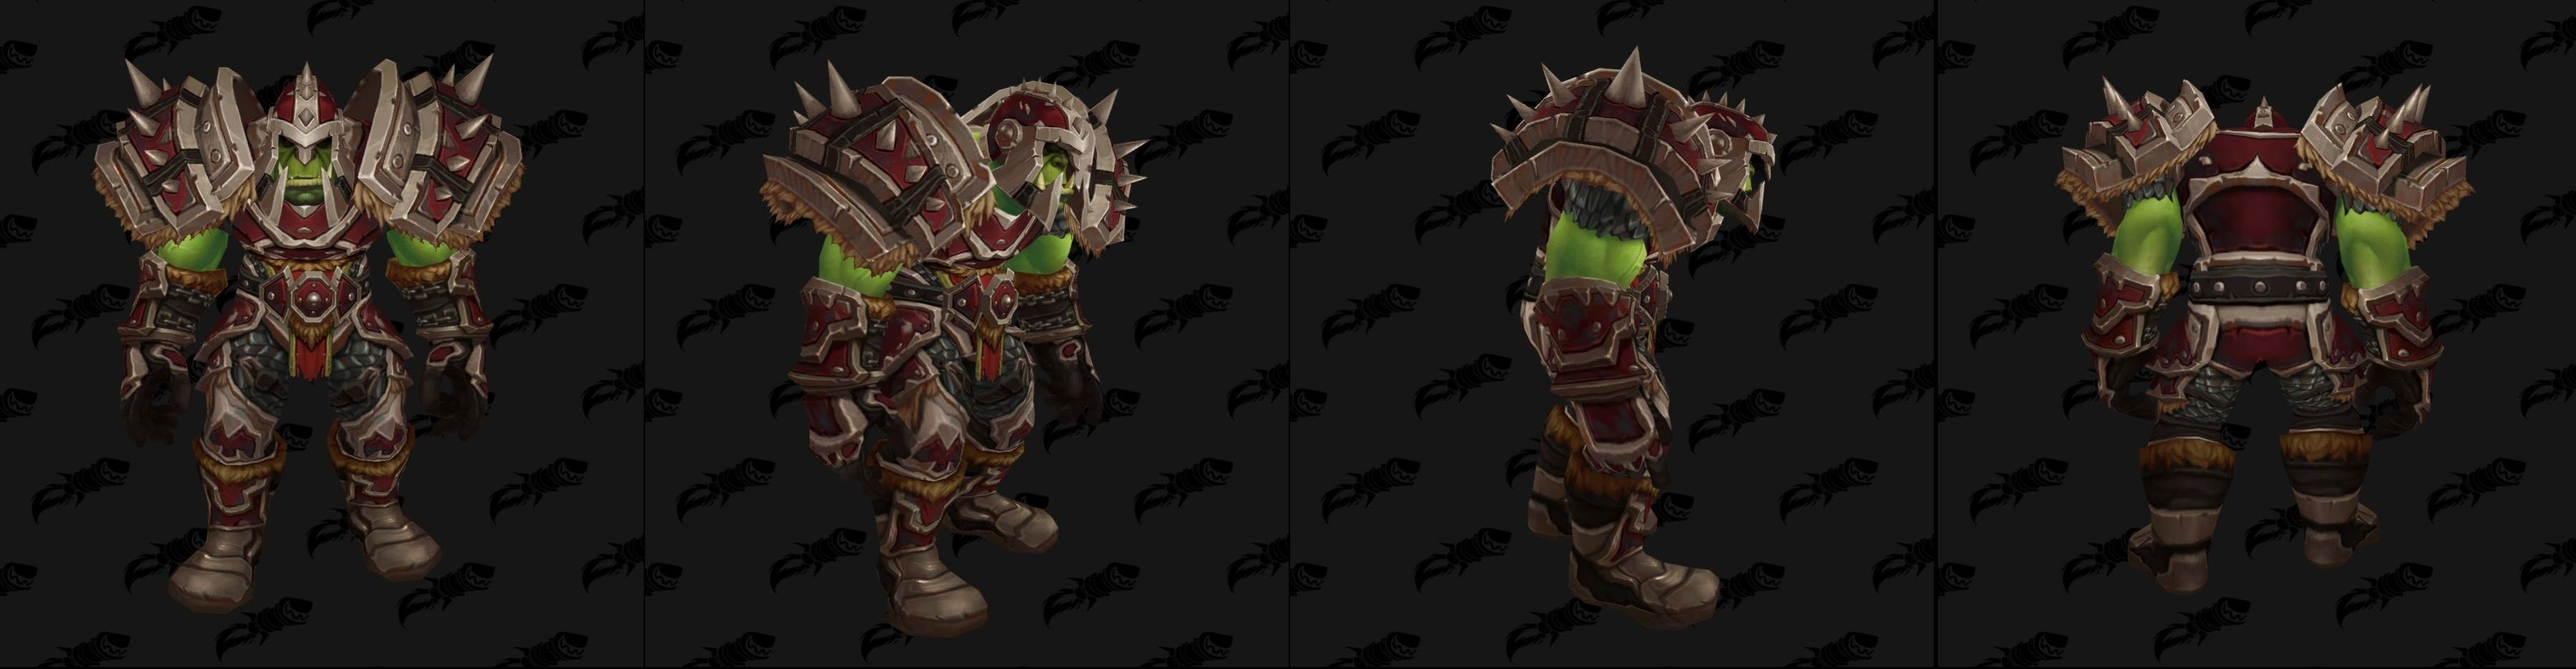 WoW Warfront Armor Orc Set 1